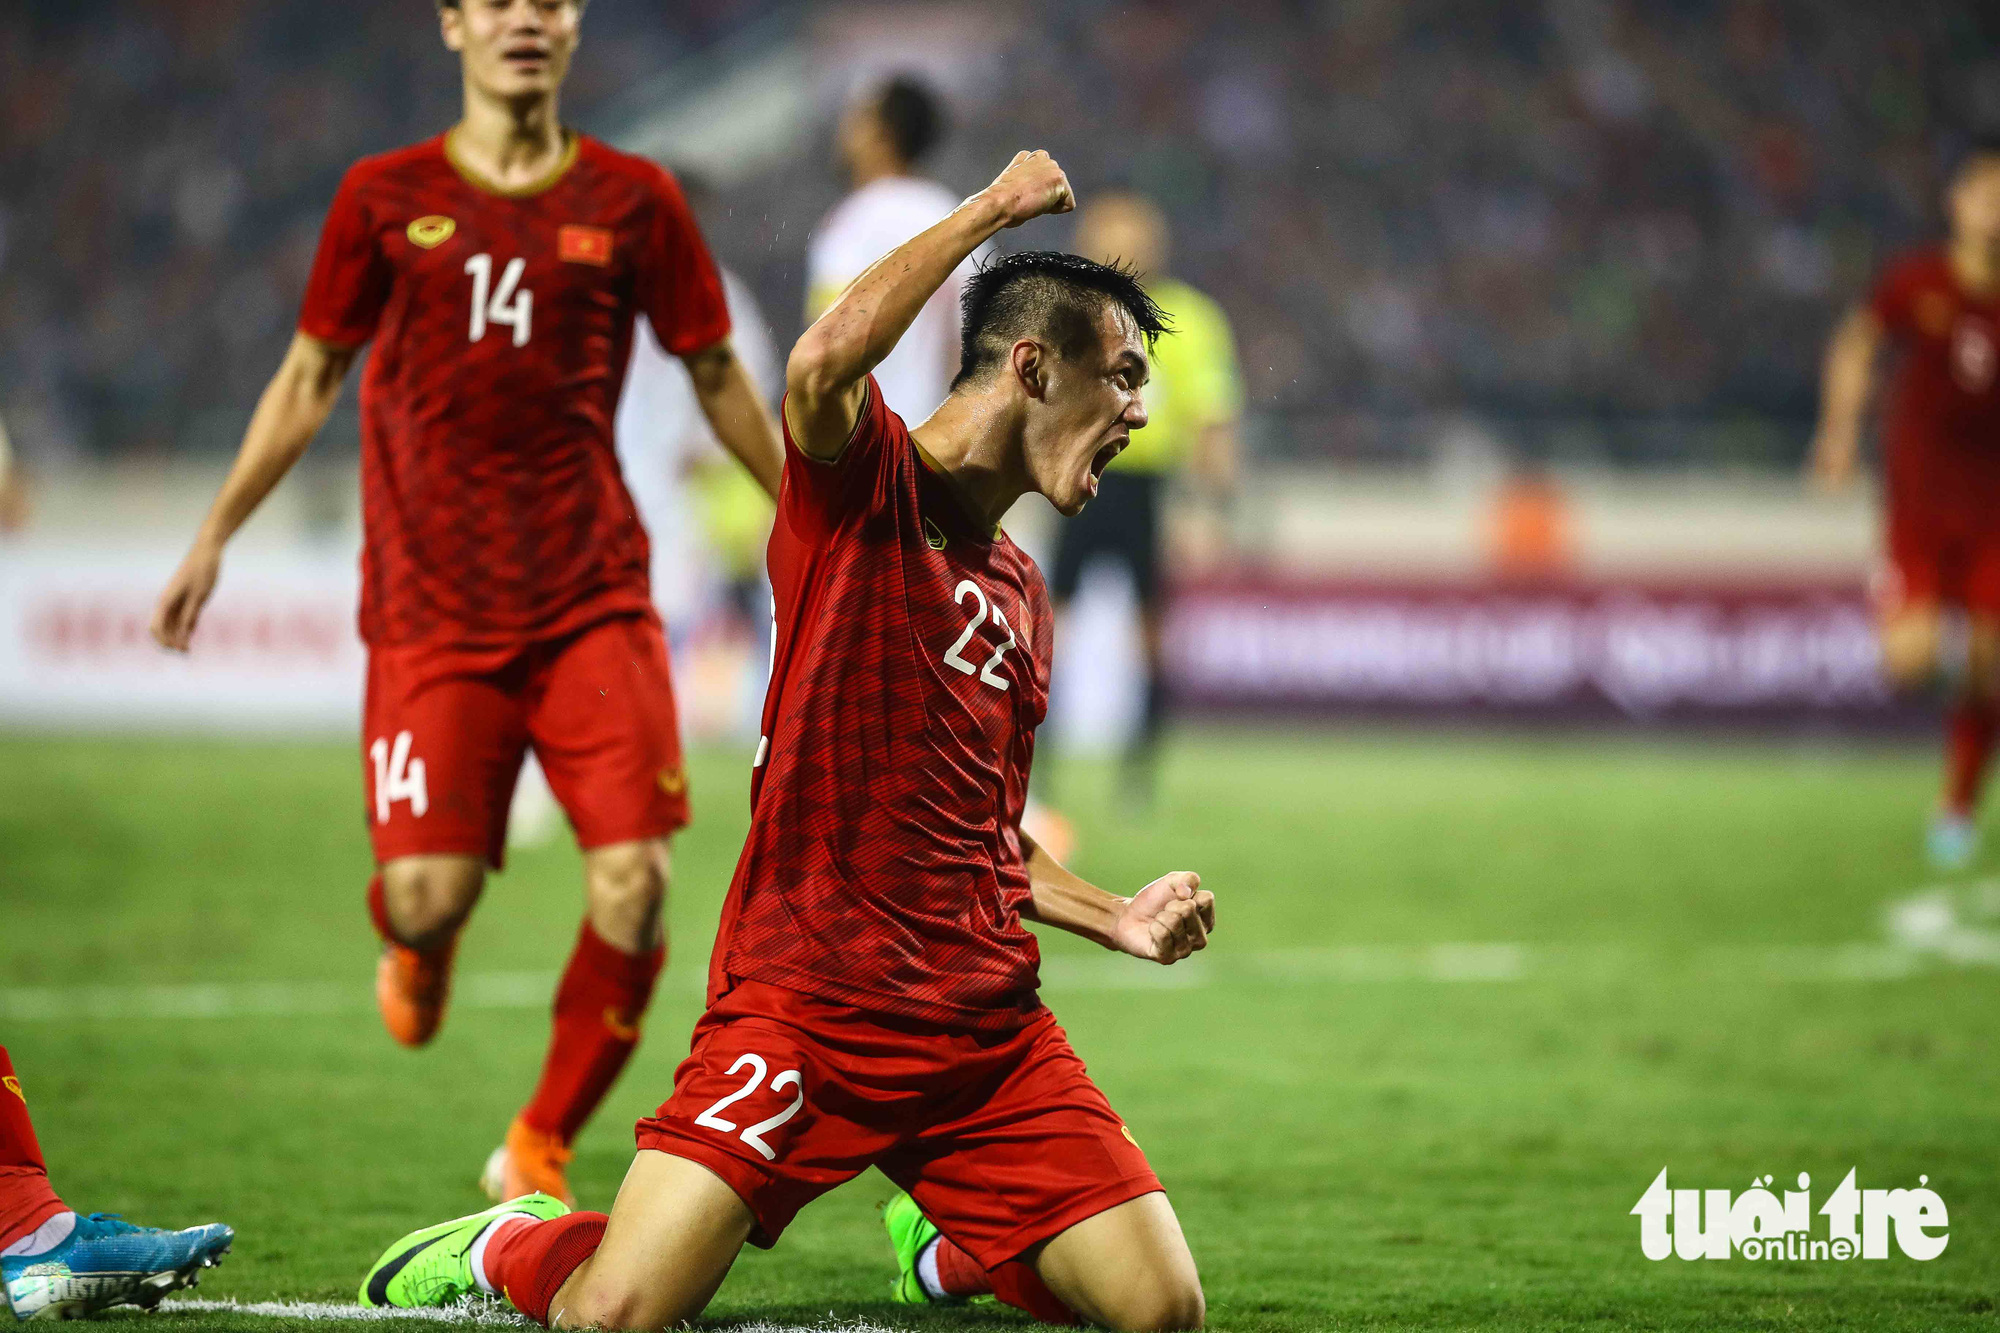 Value of Vietnam's football squad surges to $4mn amid COVID-19: Transfermarkt